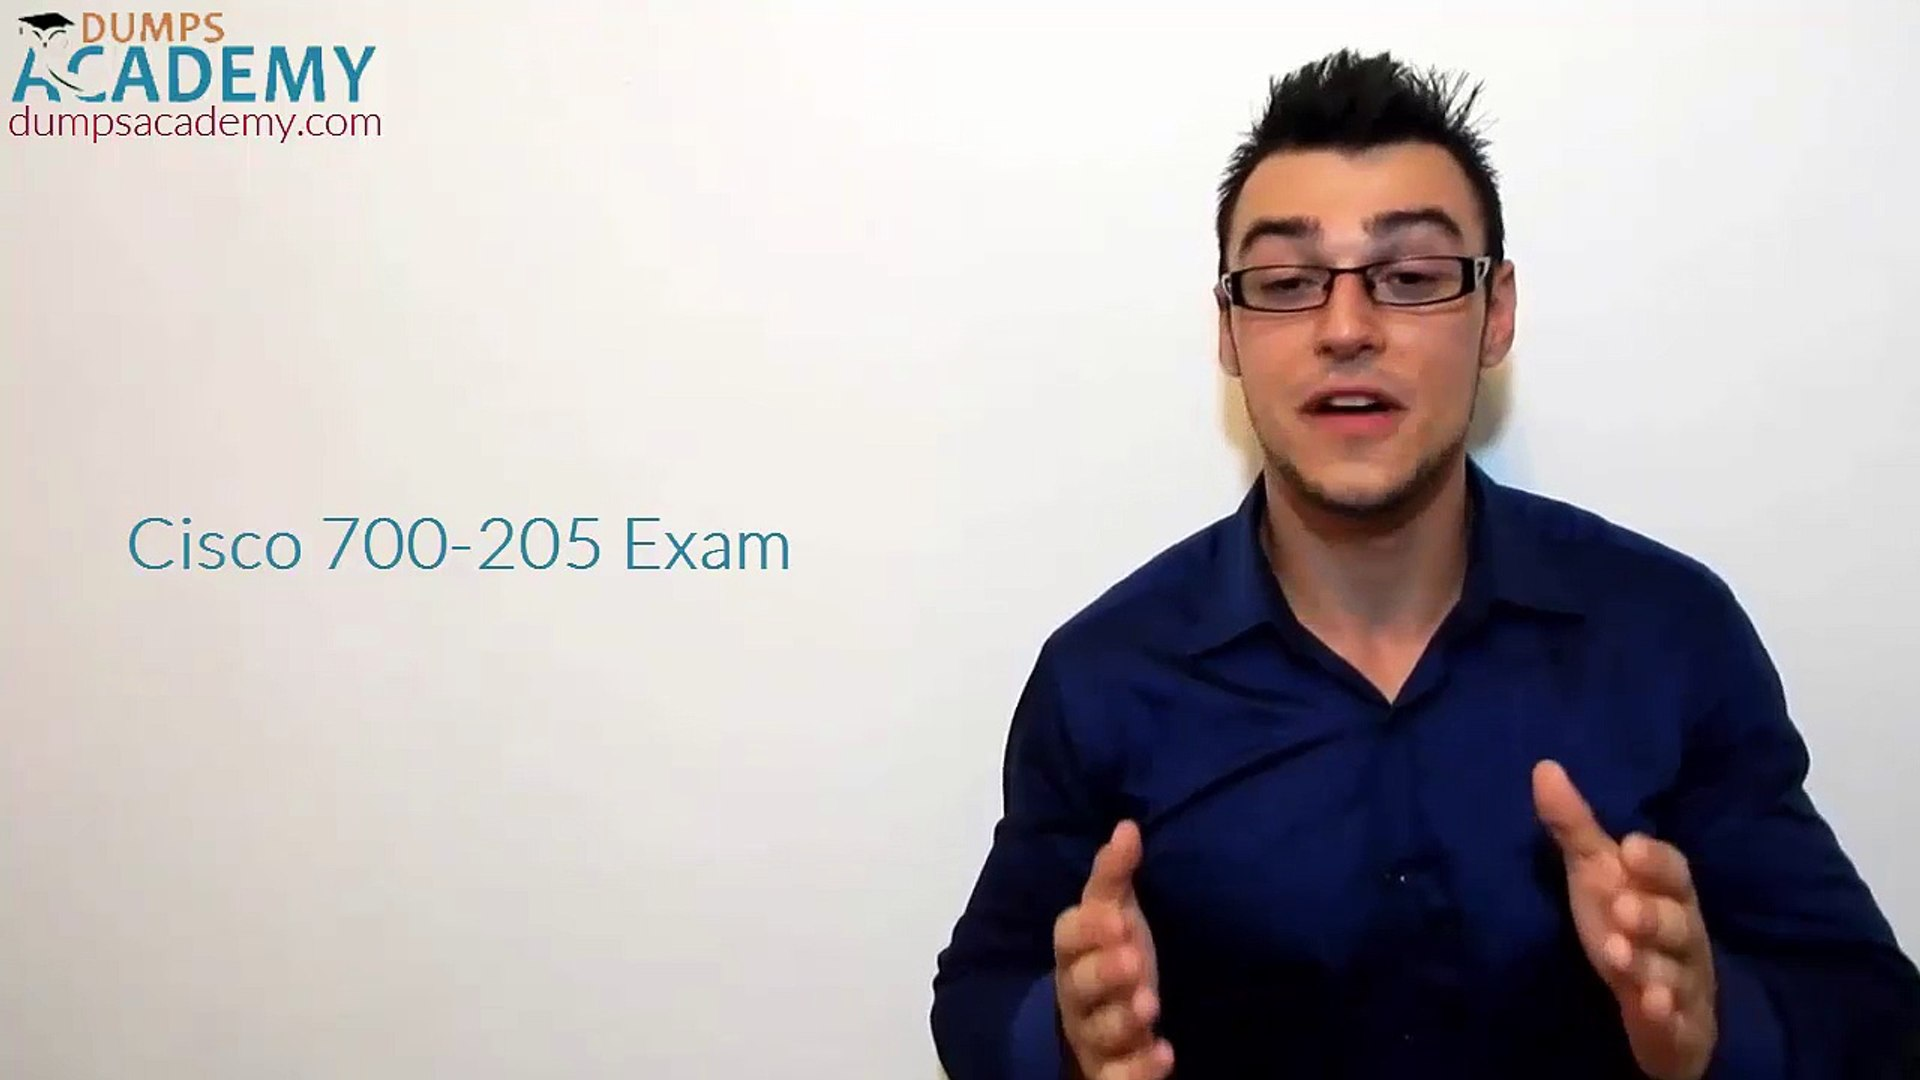 Cisco 700-205 Specialist Exam